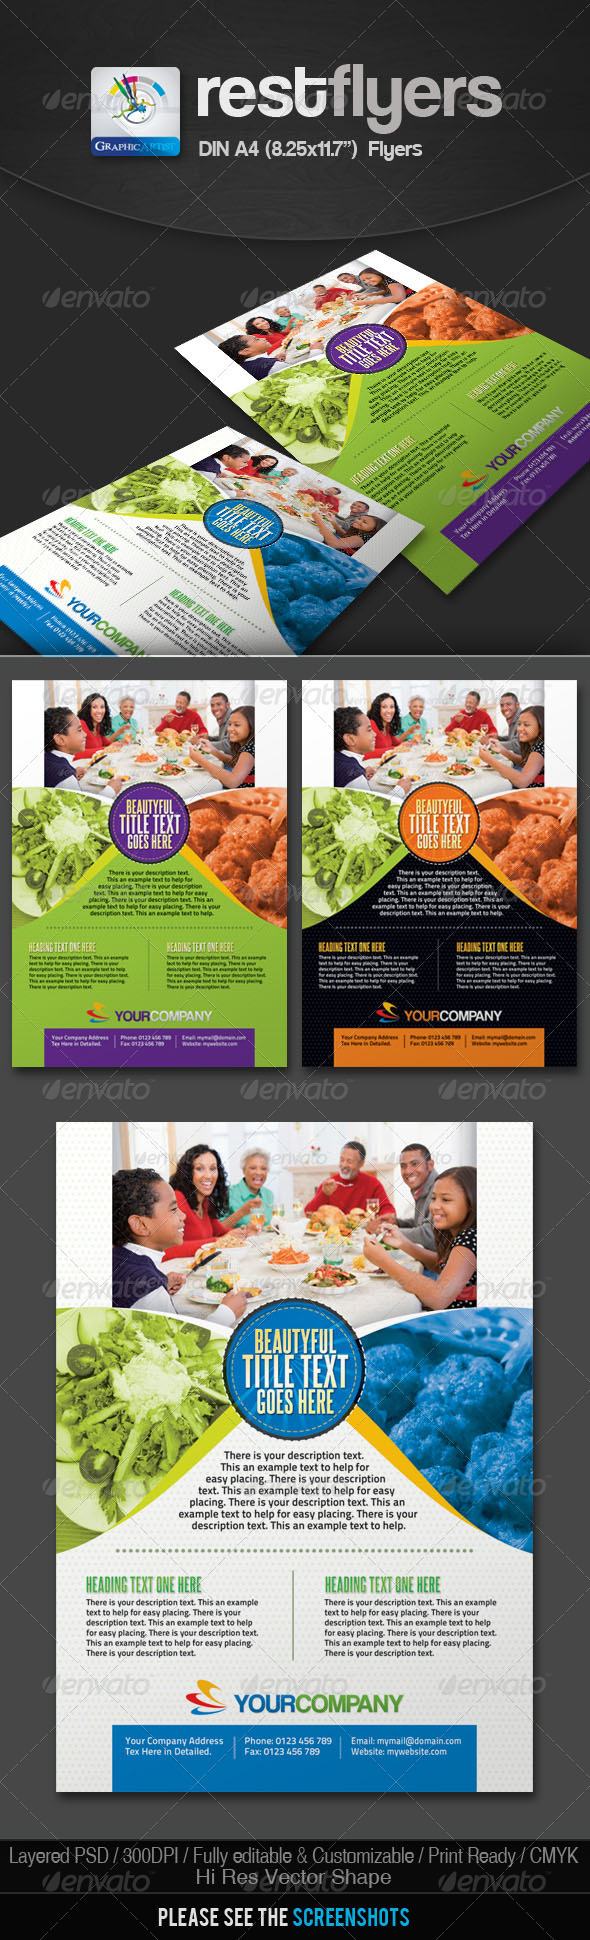 Rest Restaurant Foods Flyers - Restaurant Flyers